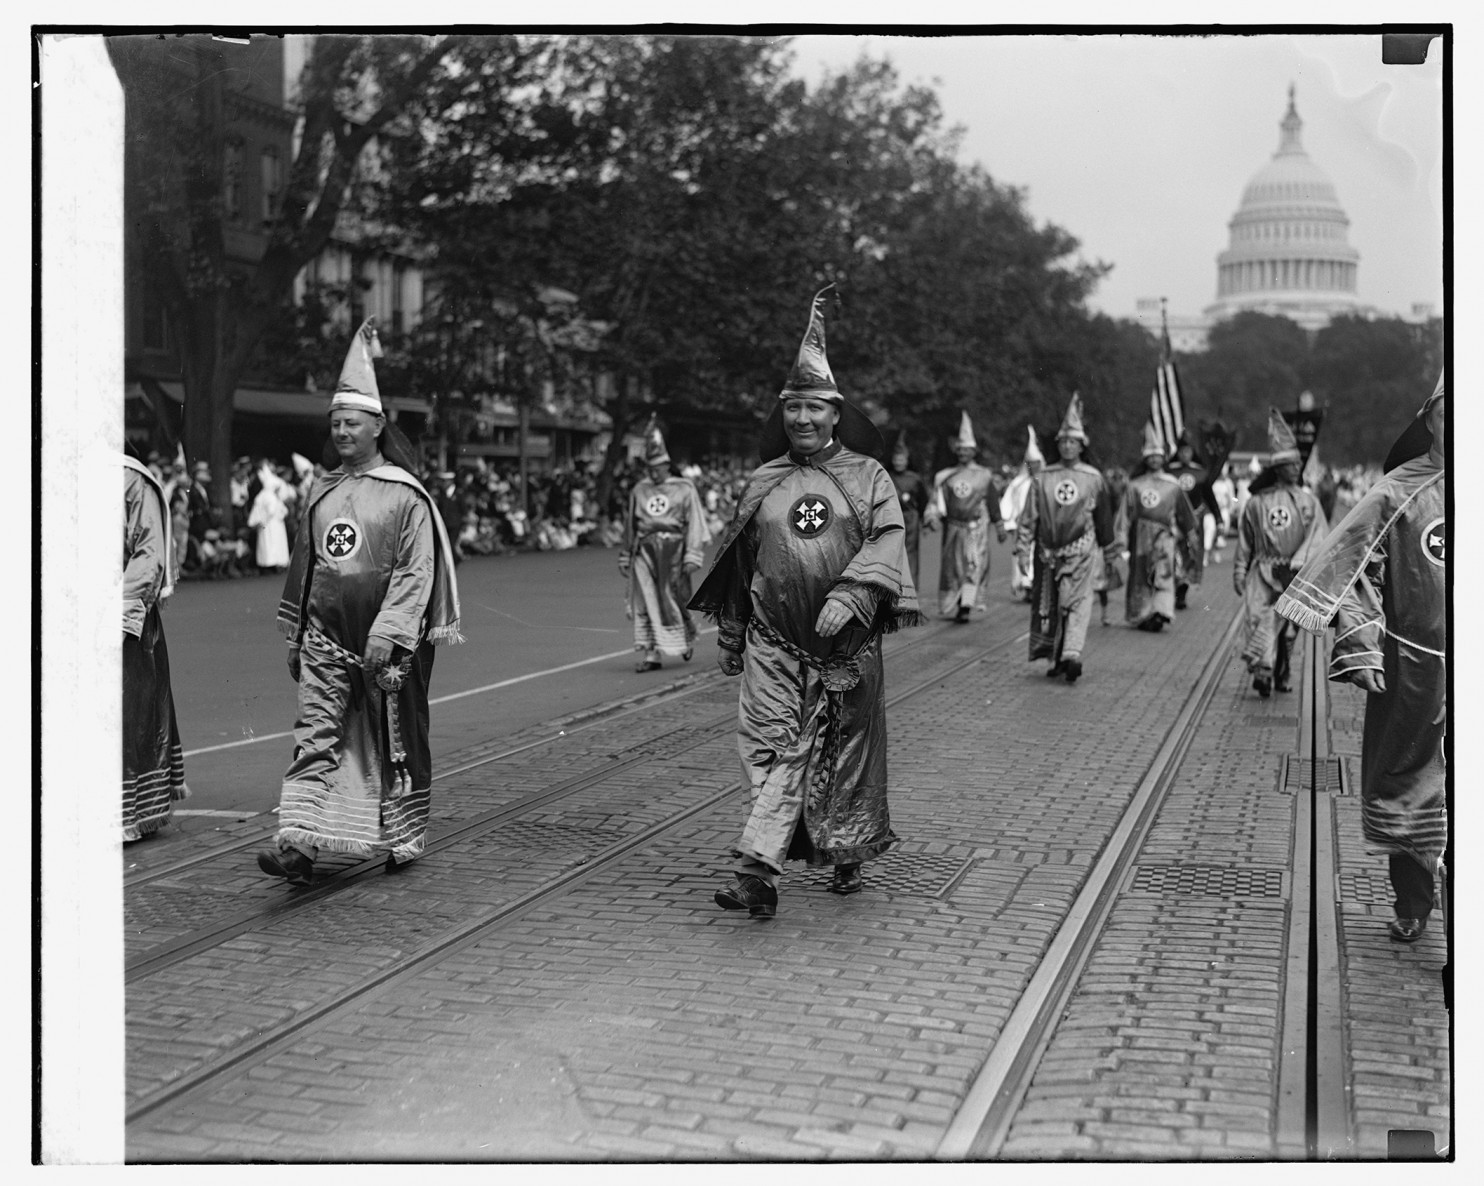 an analysis of the klu klux klan as the most influential white supremacists group in the us It was known as the ku klux klan act because of that group's prominent participation in the violence if you try to find the klu klux klan act among current united states statutes, you will of the many sections of the ku klux klan act, the most influential today is the little debated section the ku klux klan is a brutal white supremacy organization that has gone through several distinct.